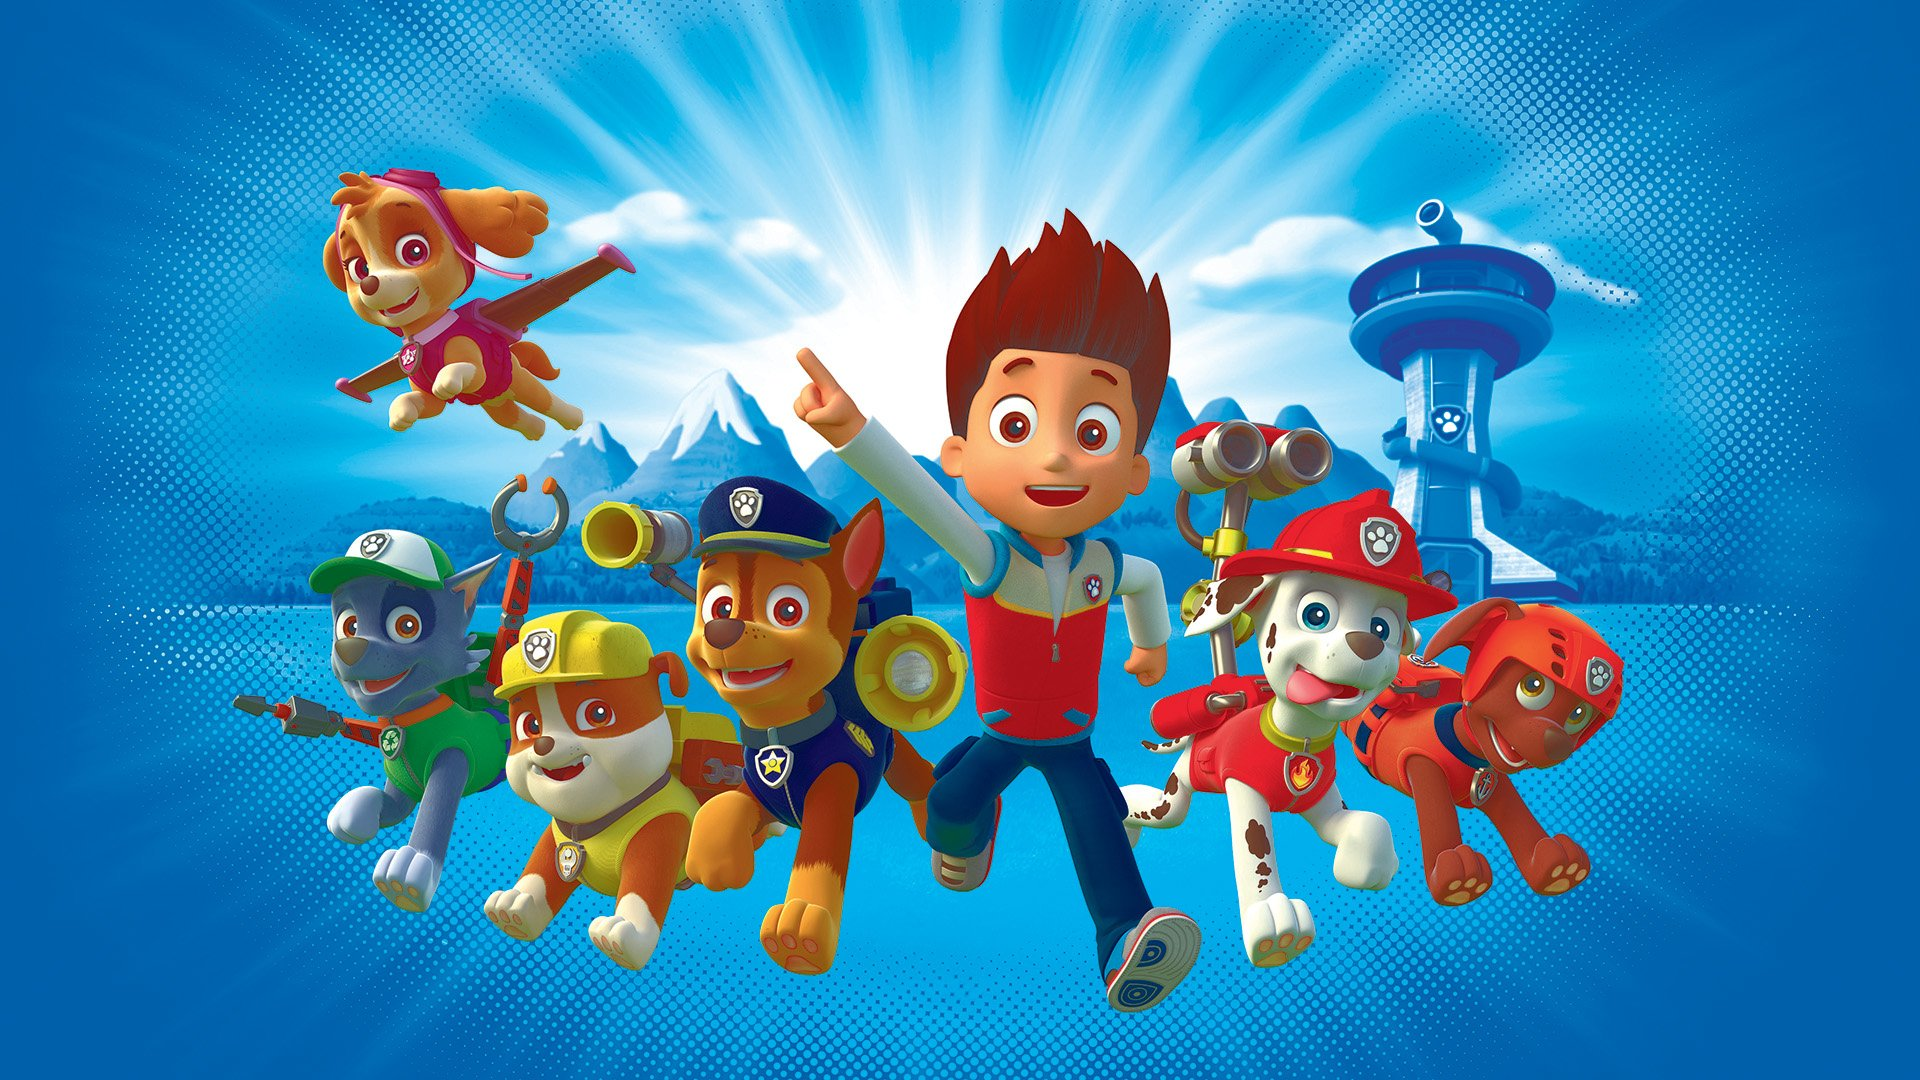 paw patrol desktop background wallpaper 64885